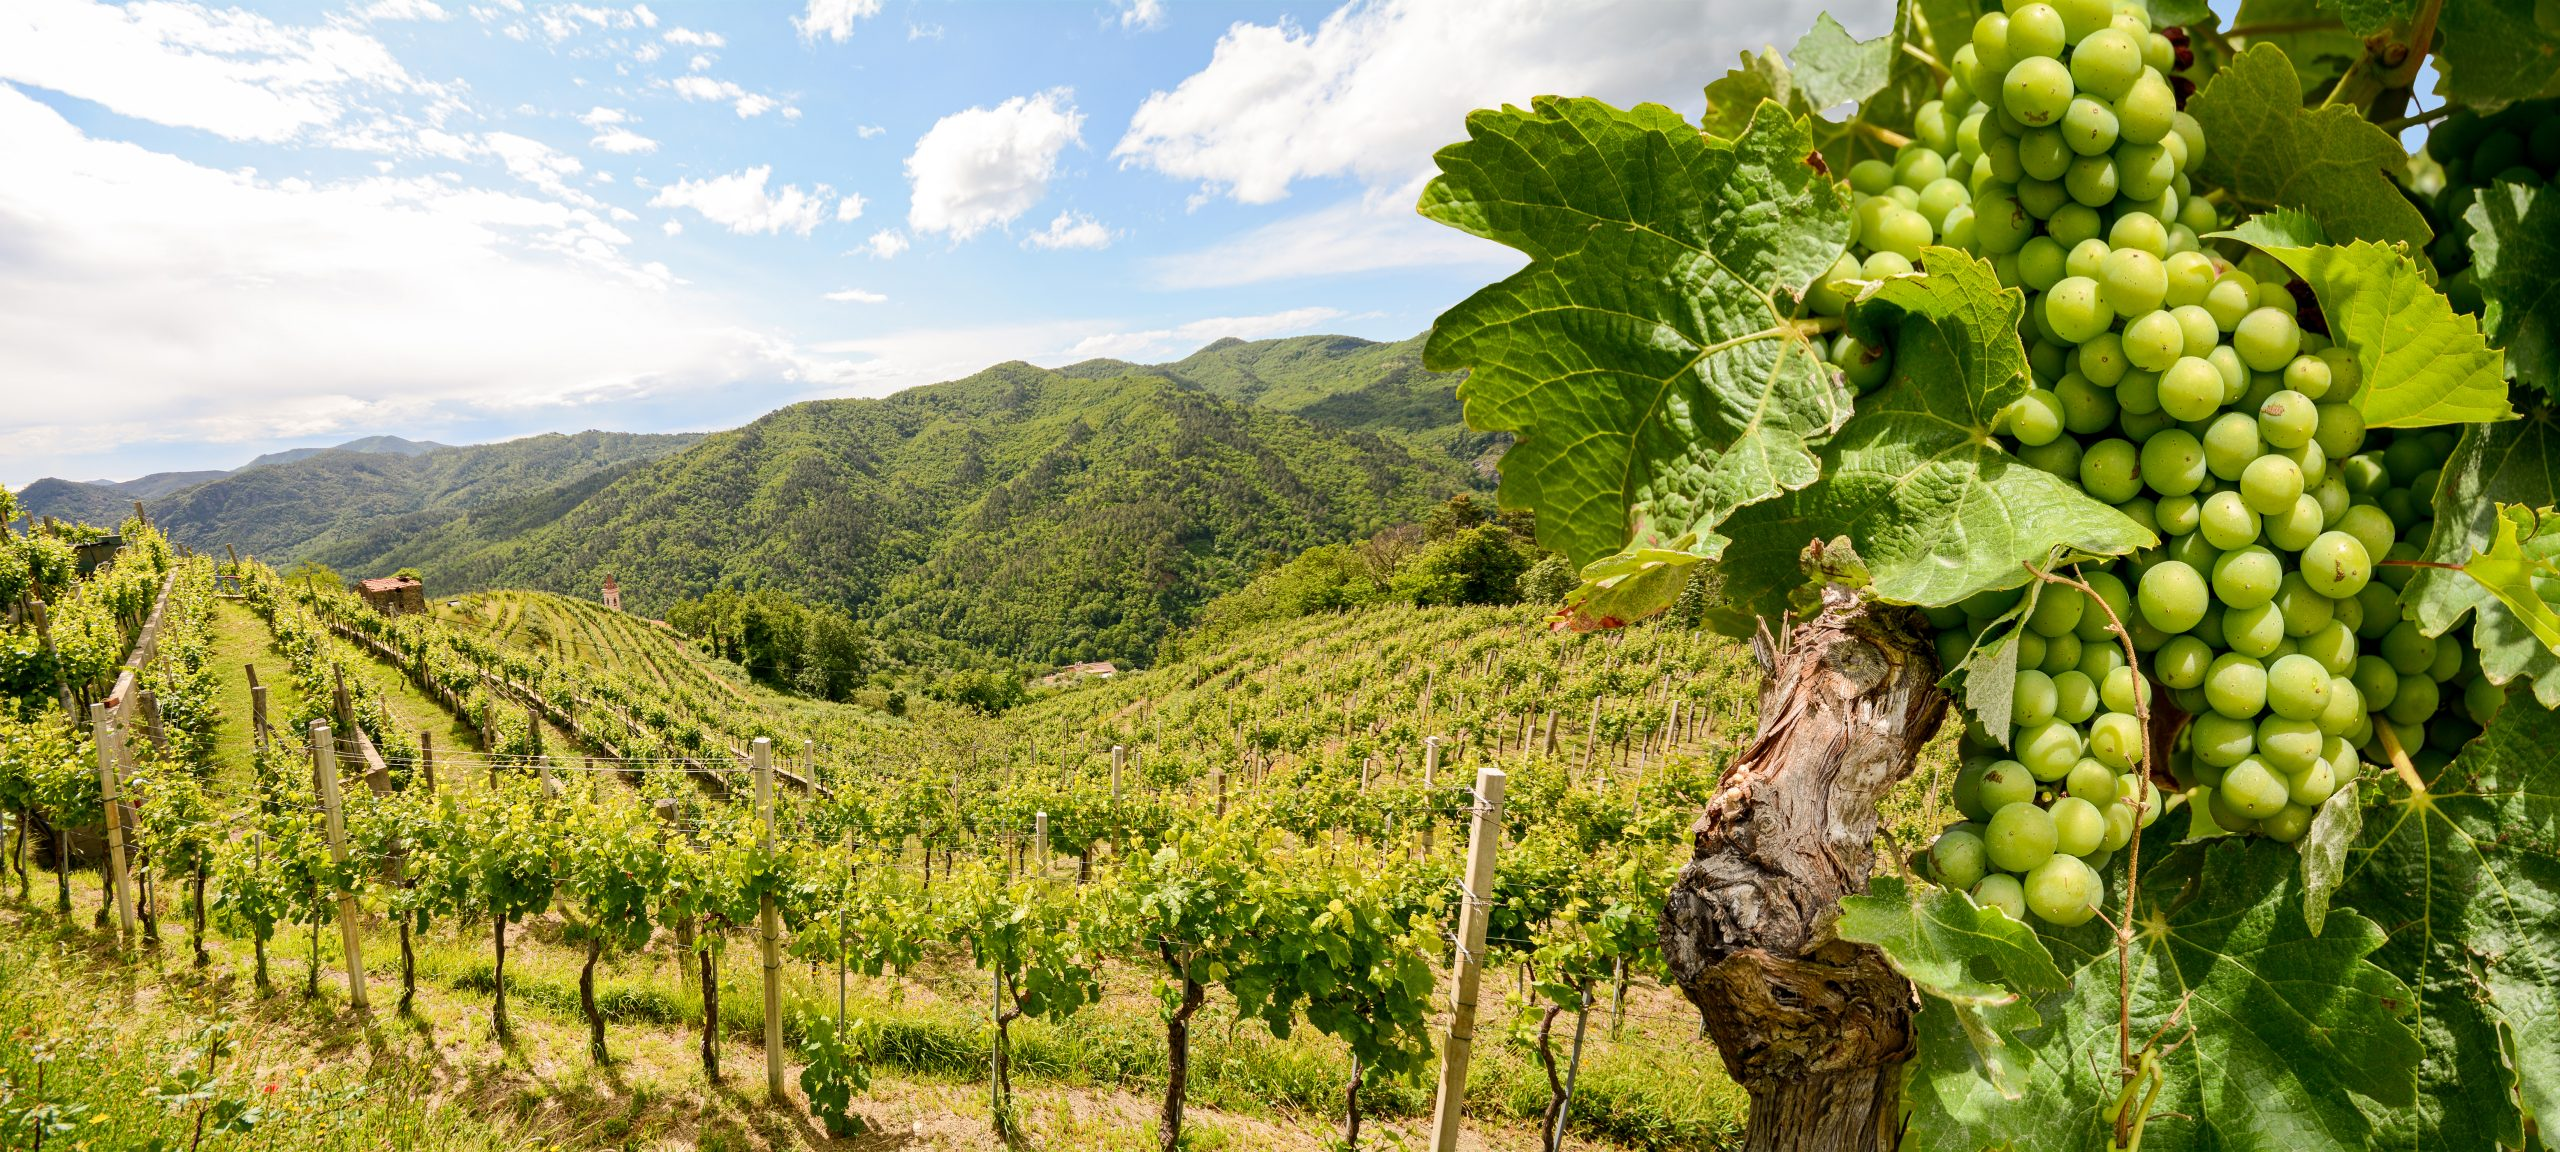 hilly vineyards: sustainable wine roundtable founded to fight climate change